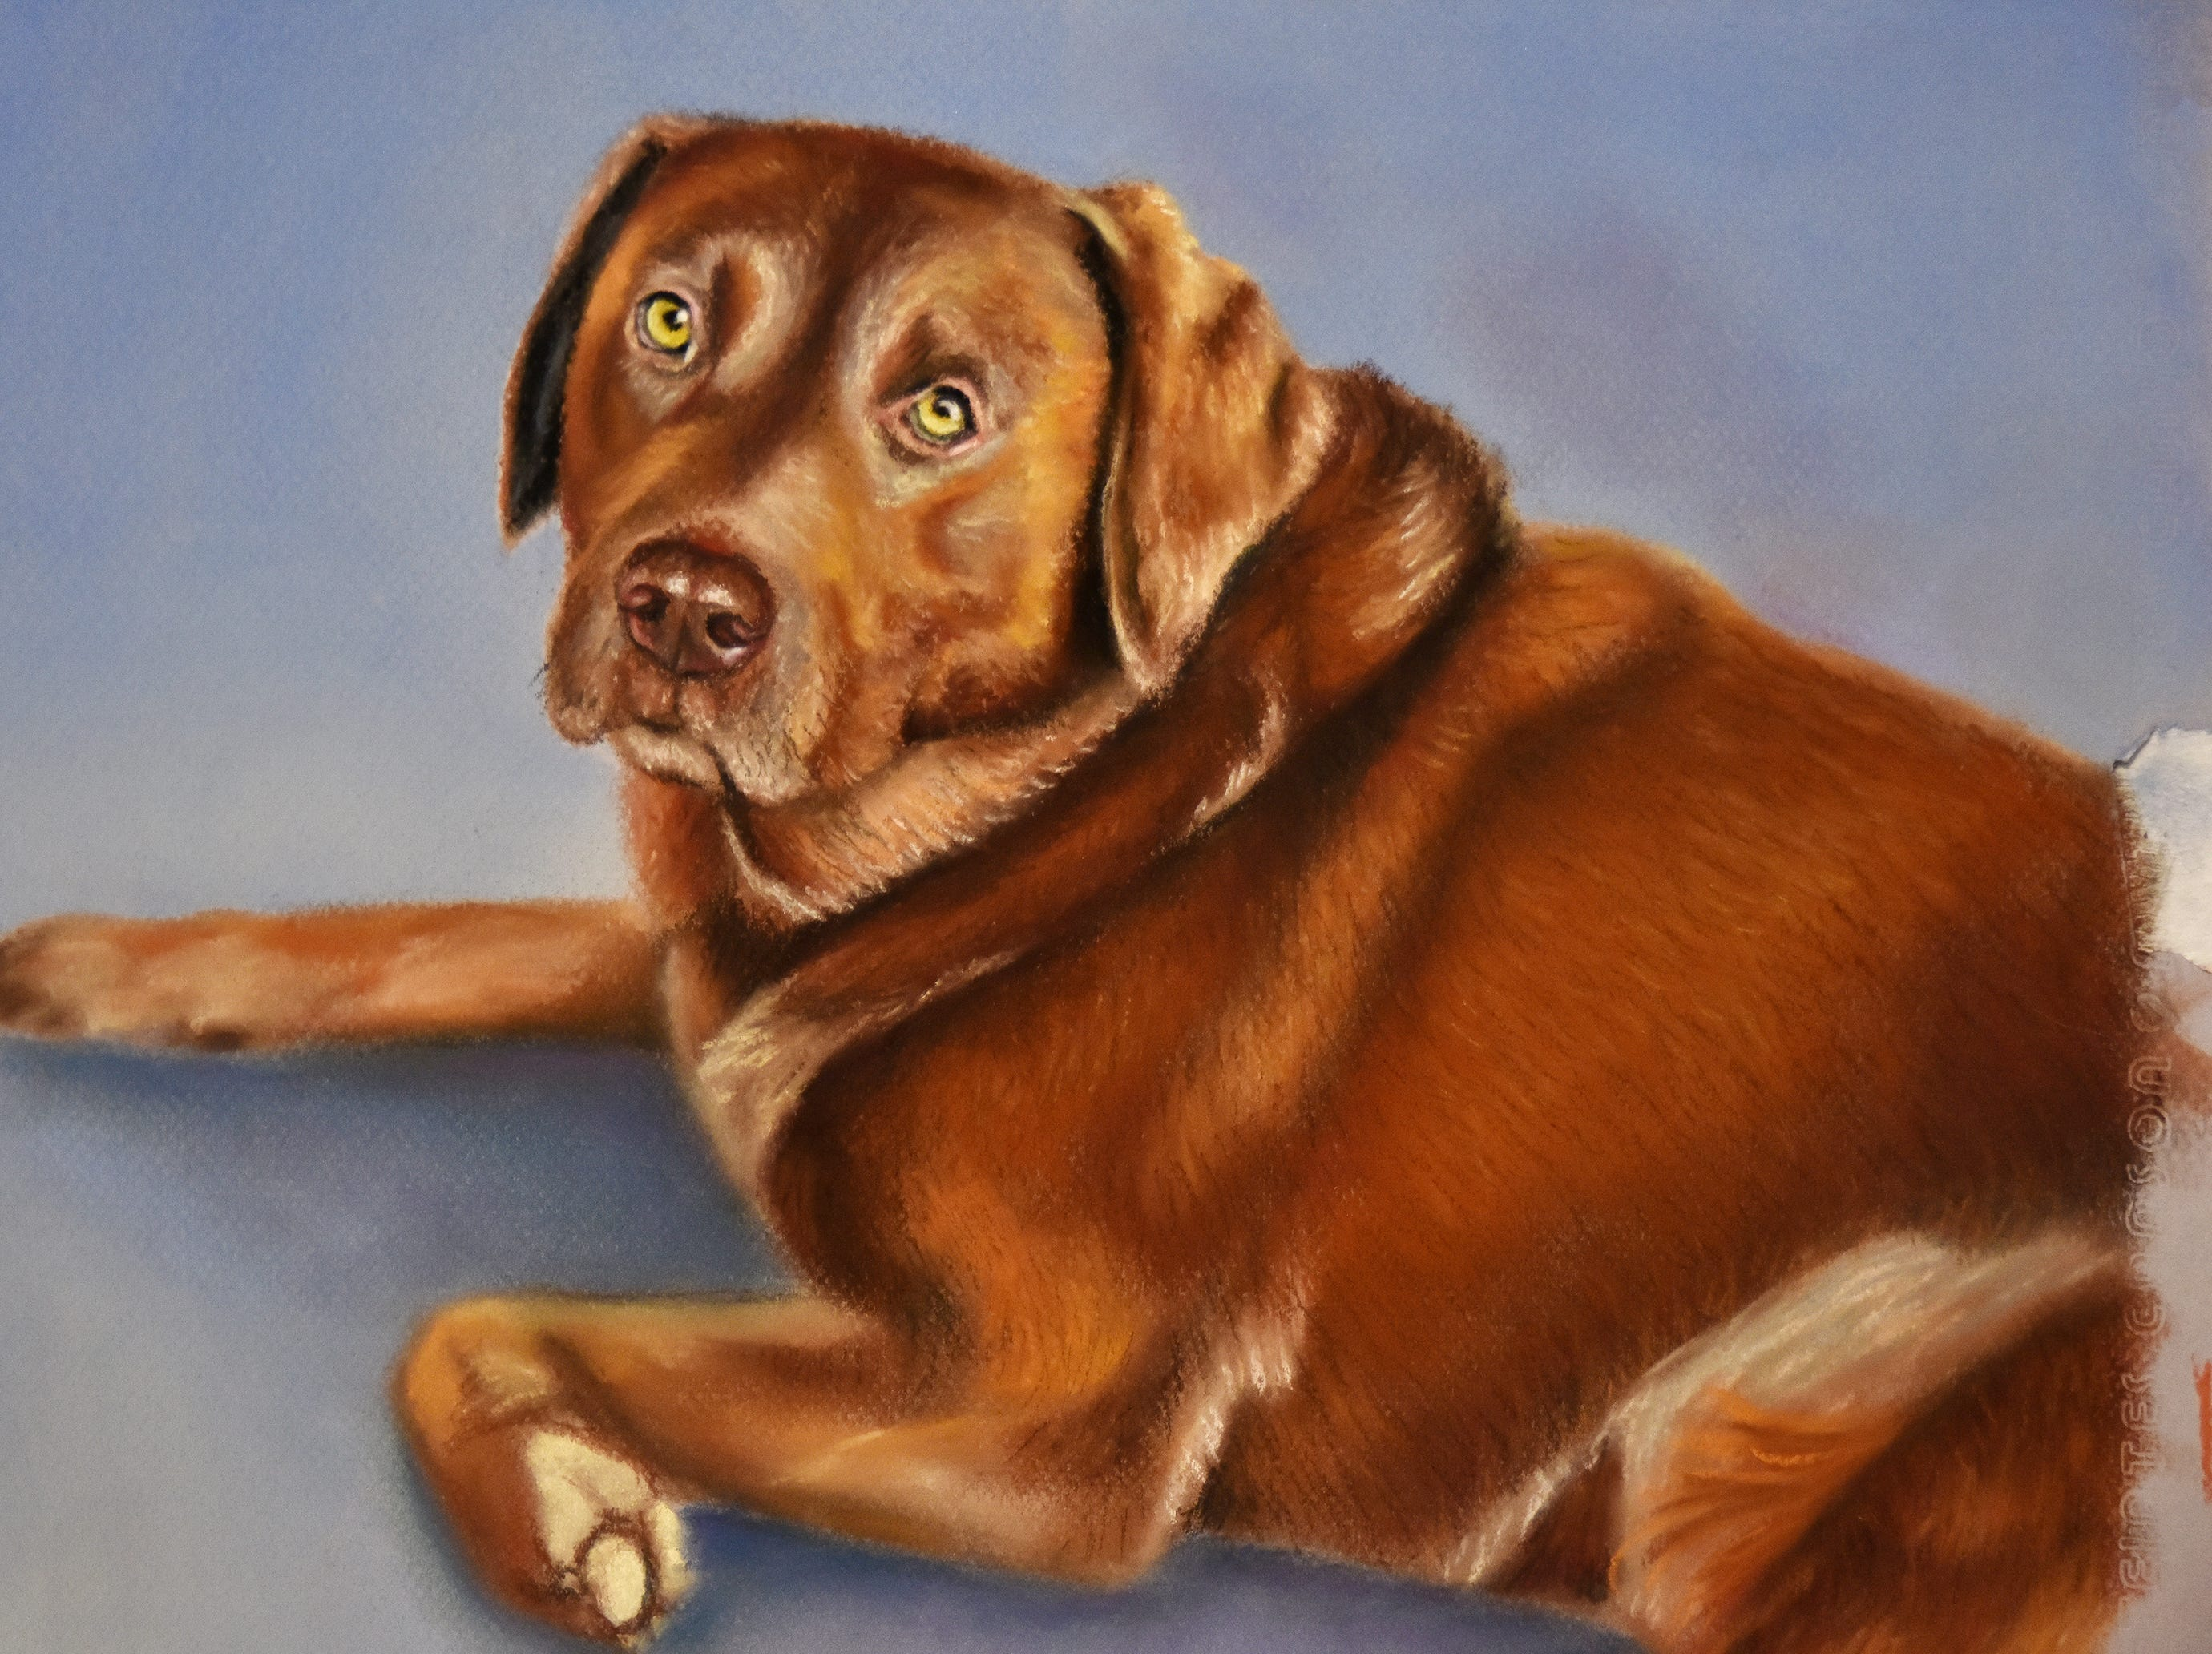 A finished pet portrait by Olivia White hangsat her home studio in Anderson